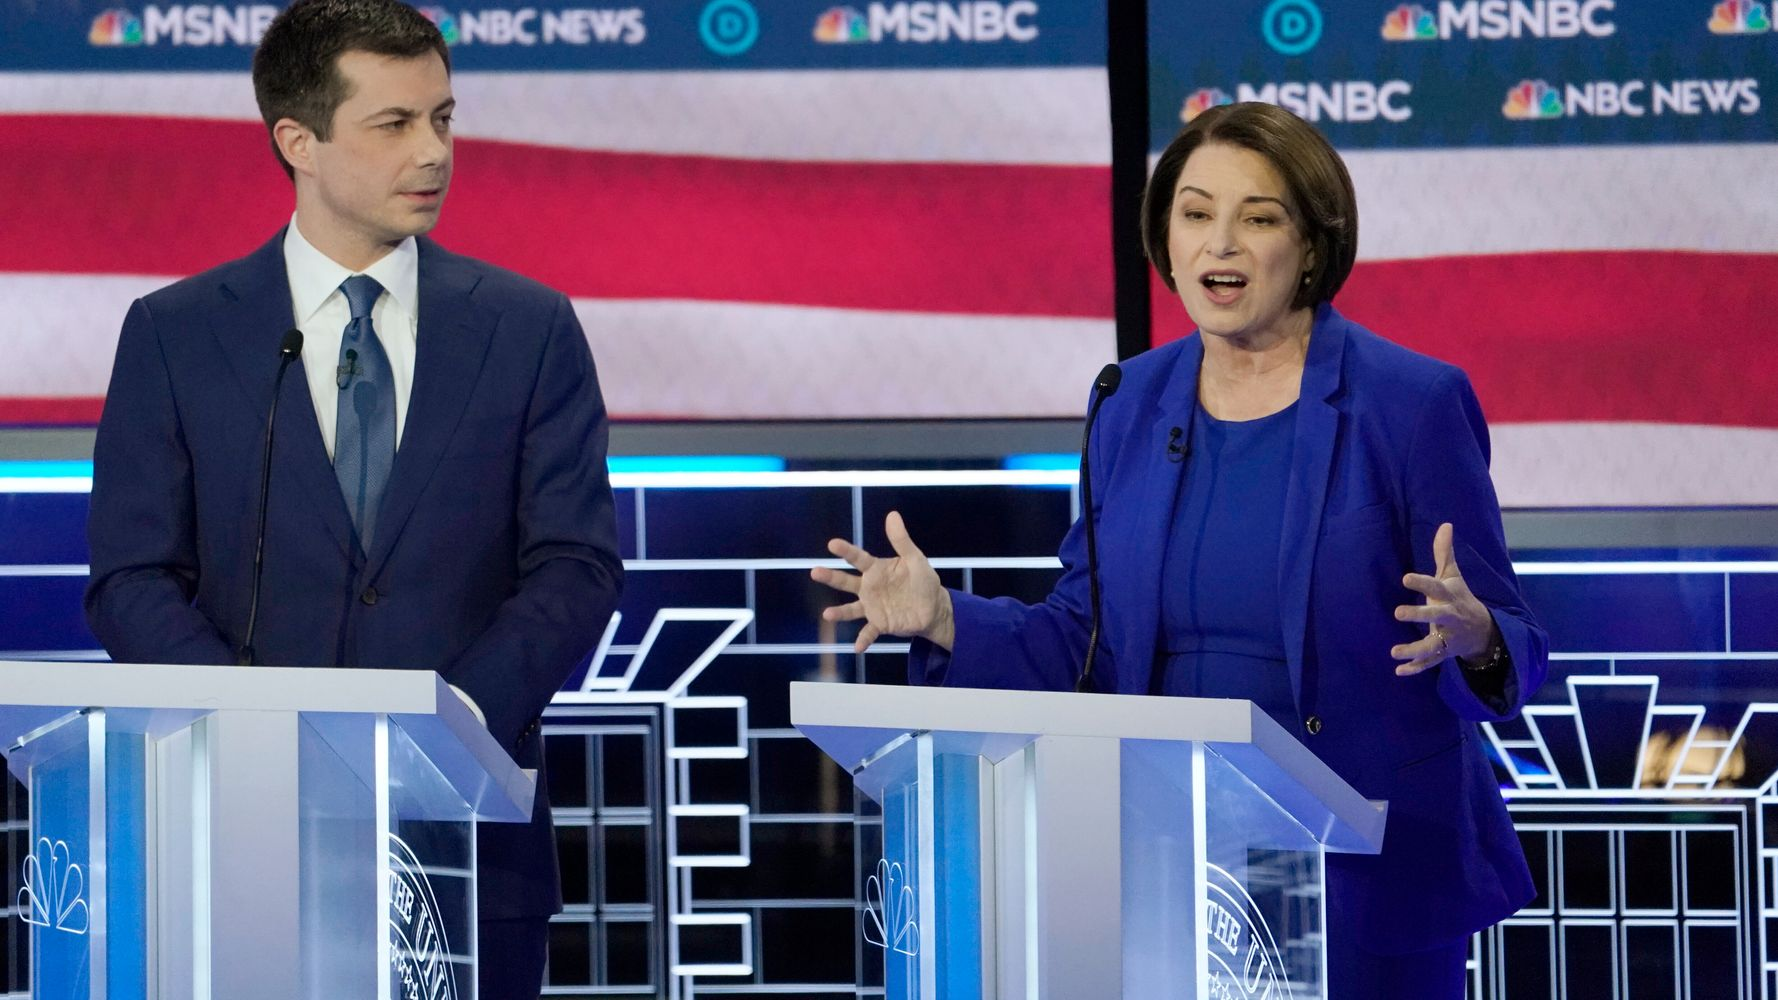 Klobuchar And Buttigieg's Debate Spat Was An Insult To Mexico